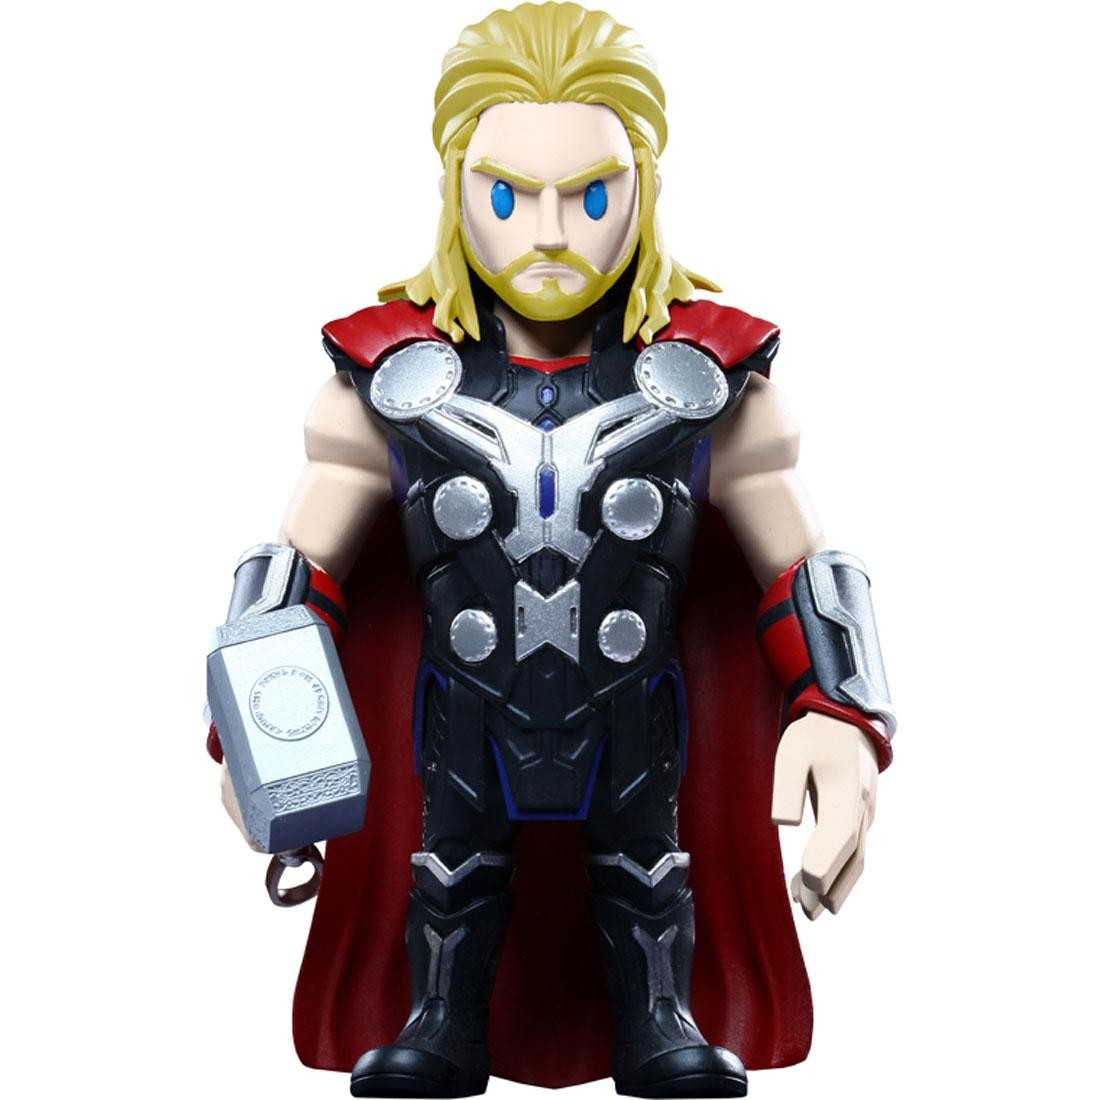 Hot Toys Thor Avengers Age of Ultron Series 2 Artist Mix Collectible Figure (black / red)